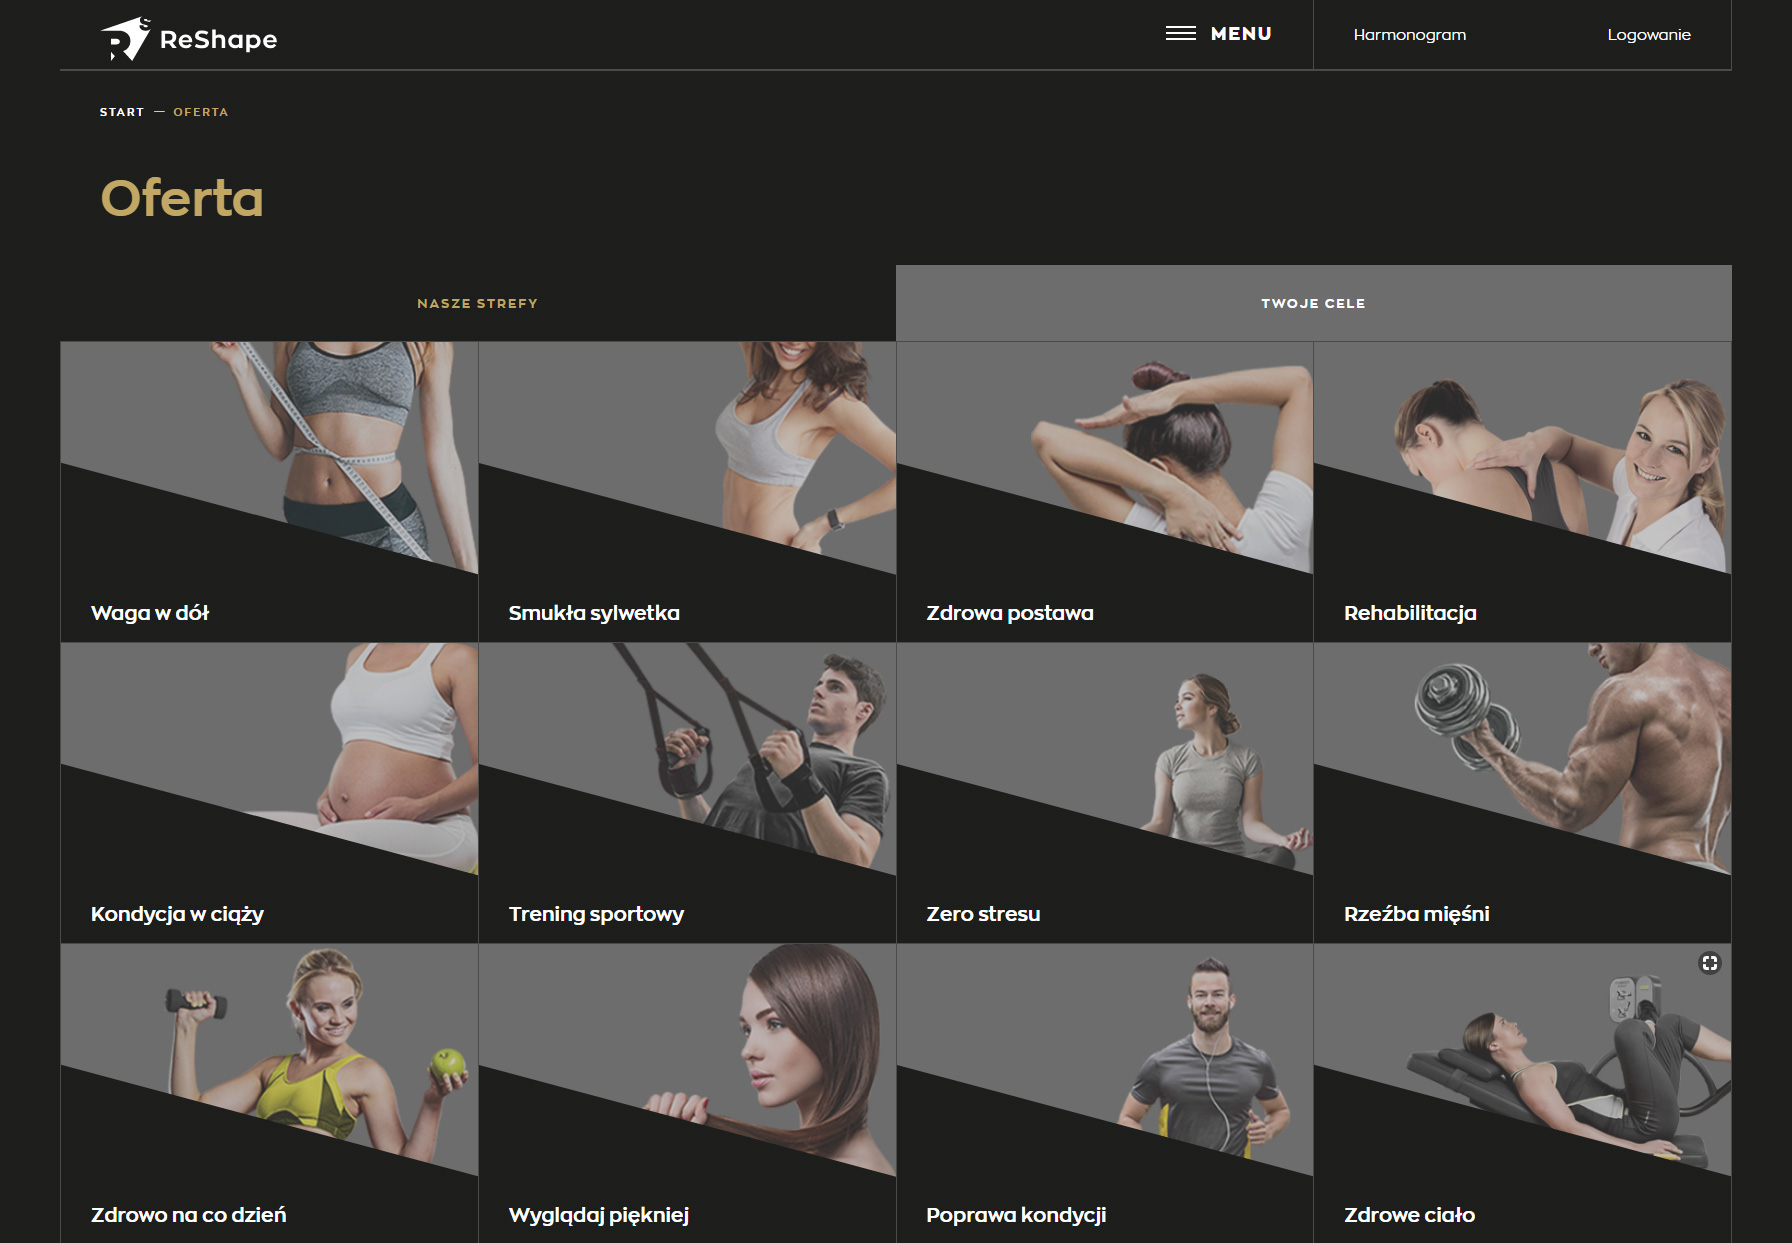 ReShape - Website of the Day